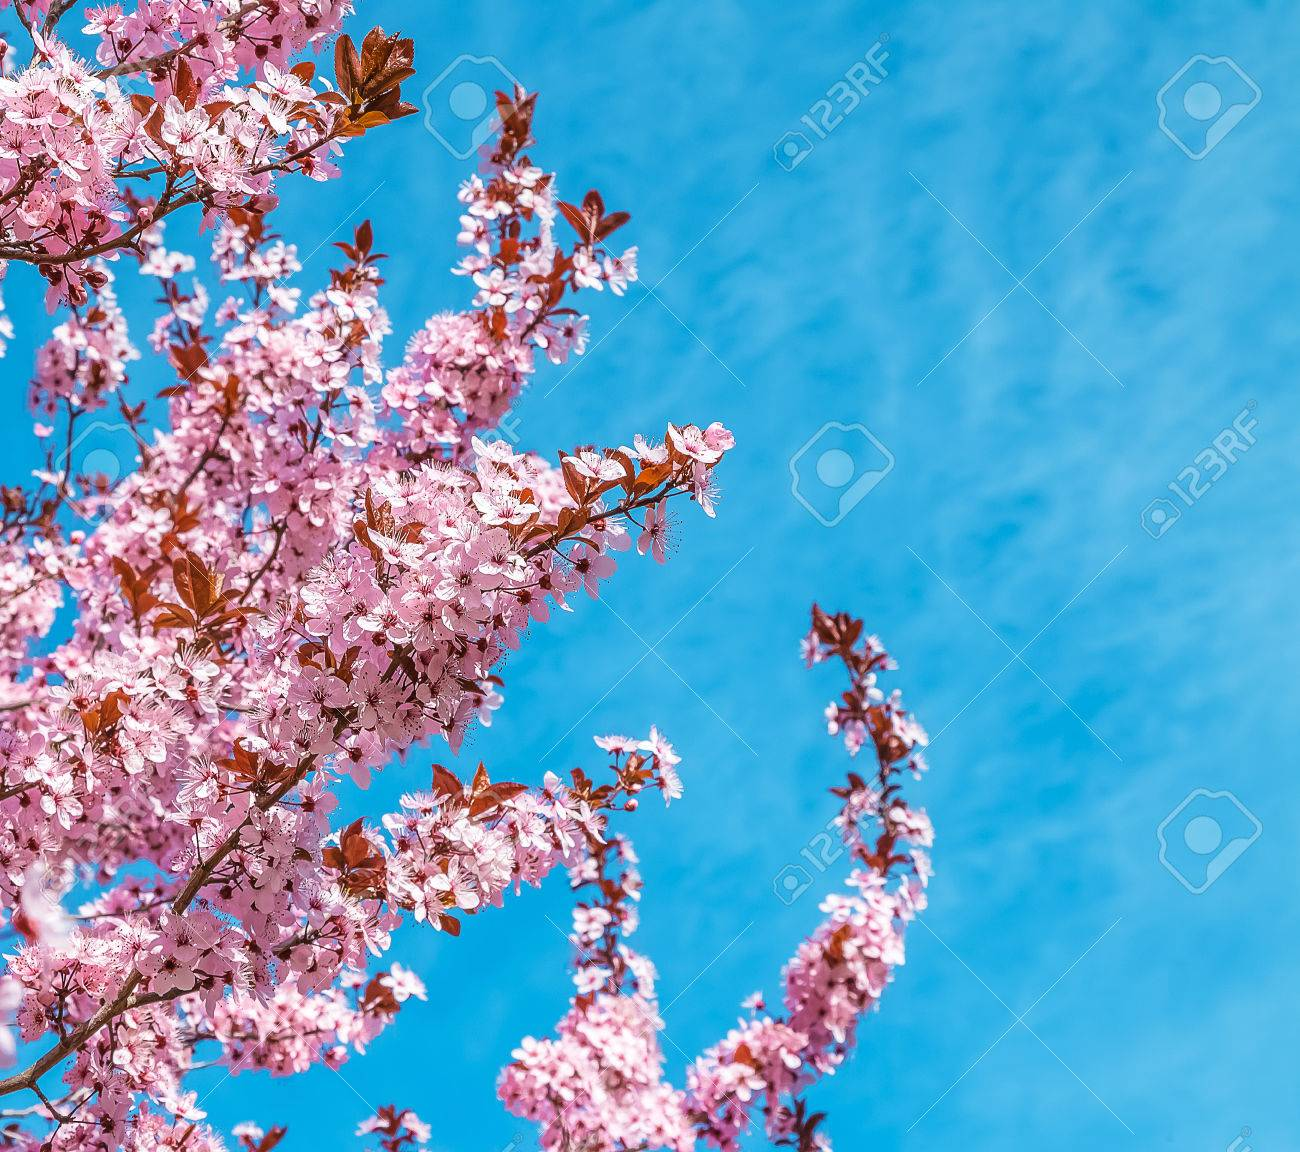 Spring Tree With Pink Flowers Almond Blossom On A Branch On Green